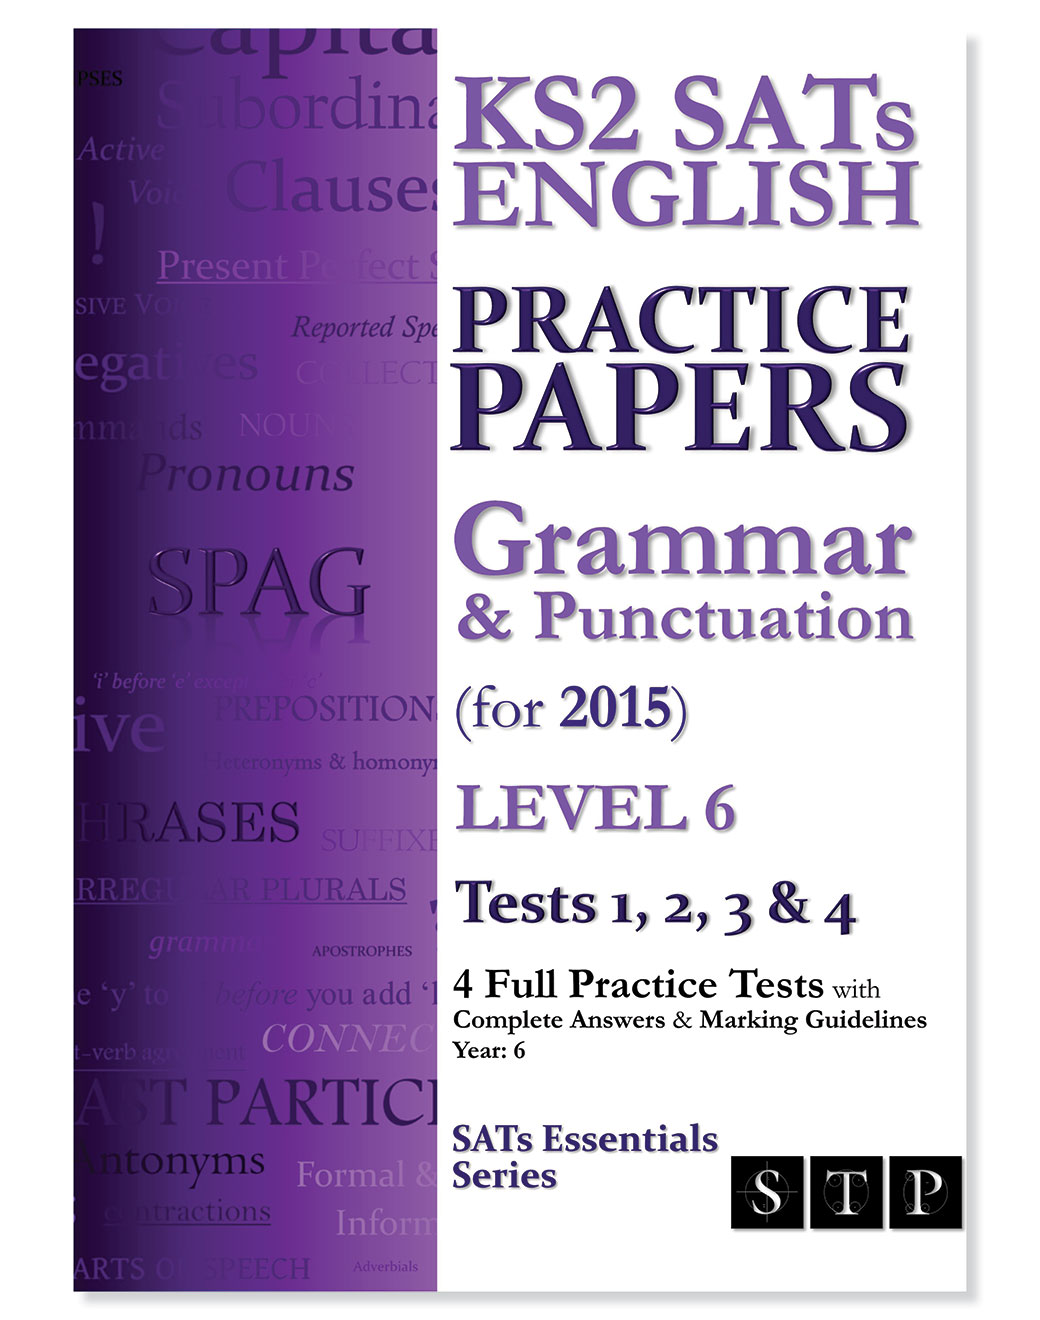 STP Books KS2 SATs English Practice Papers: Grammar & Punctuation (for 2015) Level 6: Tests 1, 2, 3 & 4